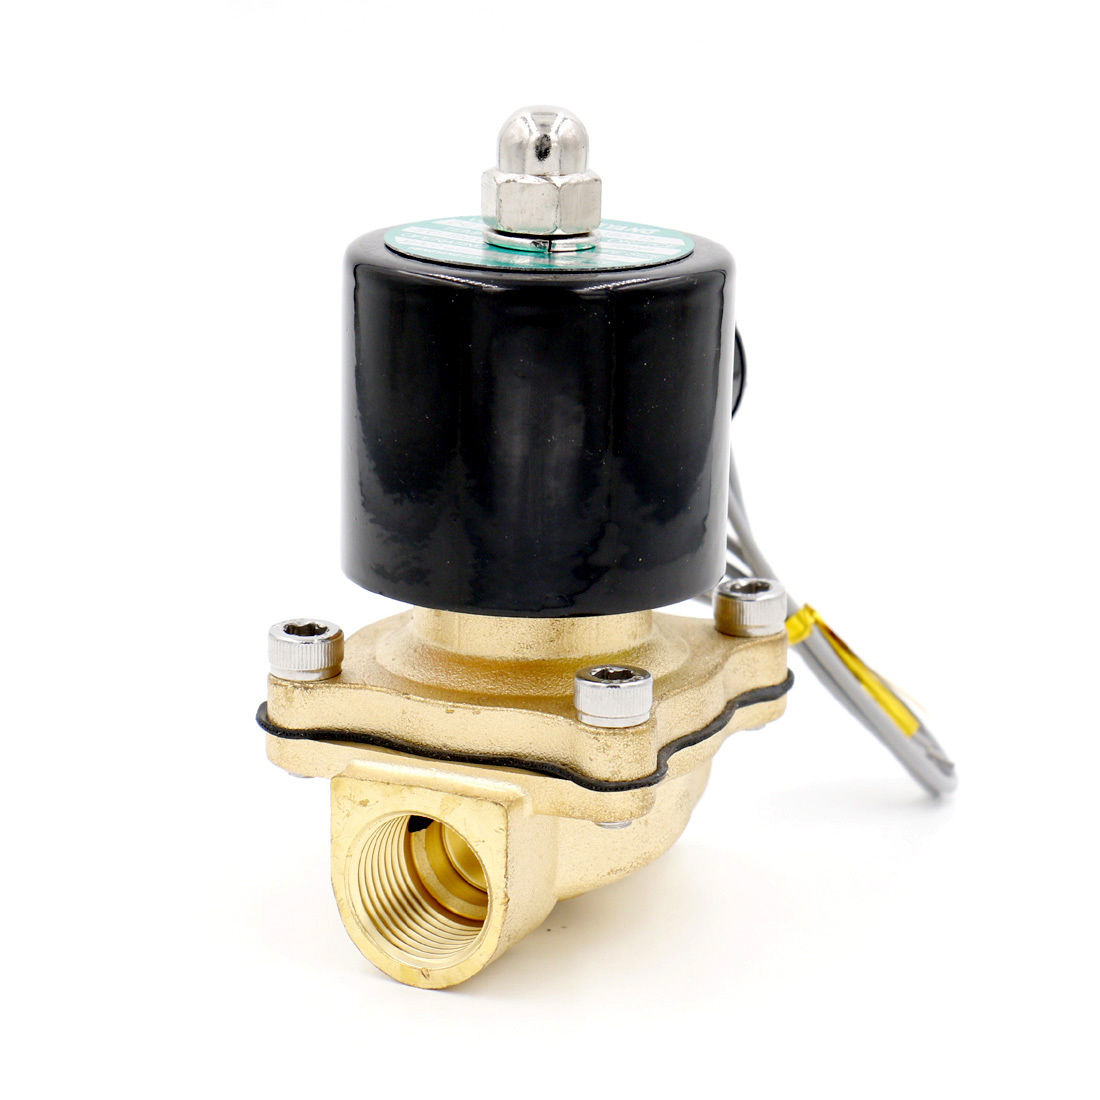 все цены на Brass Electric Solenoid Valve 2W-160-15 1/2 Inch NPT for Air Water Valve 110V NC онлайн